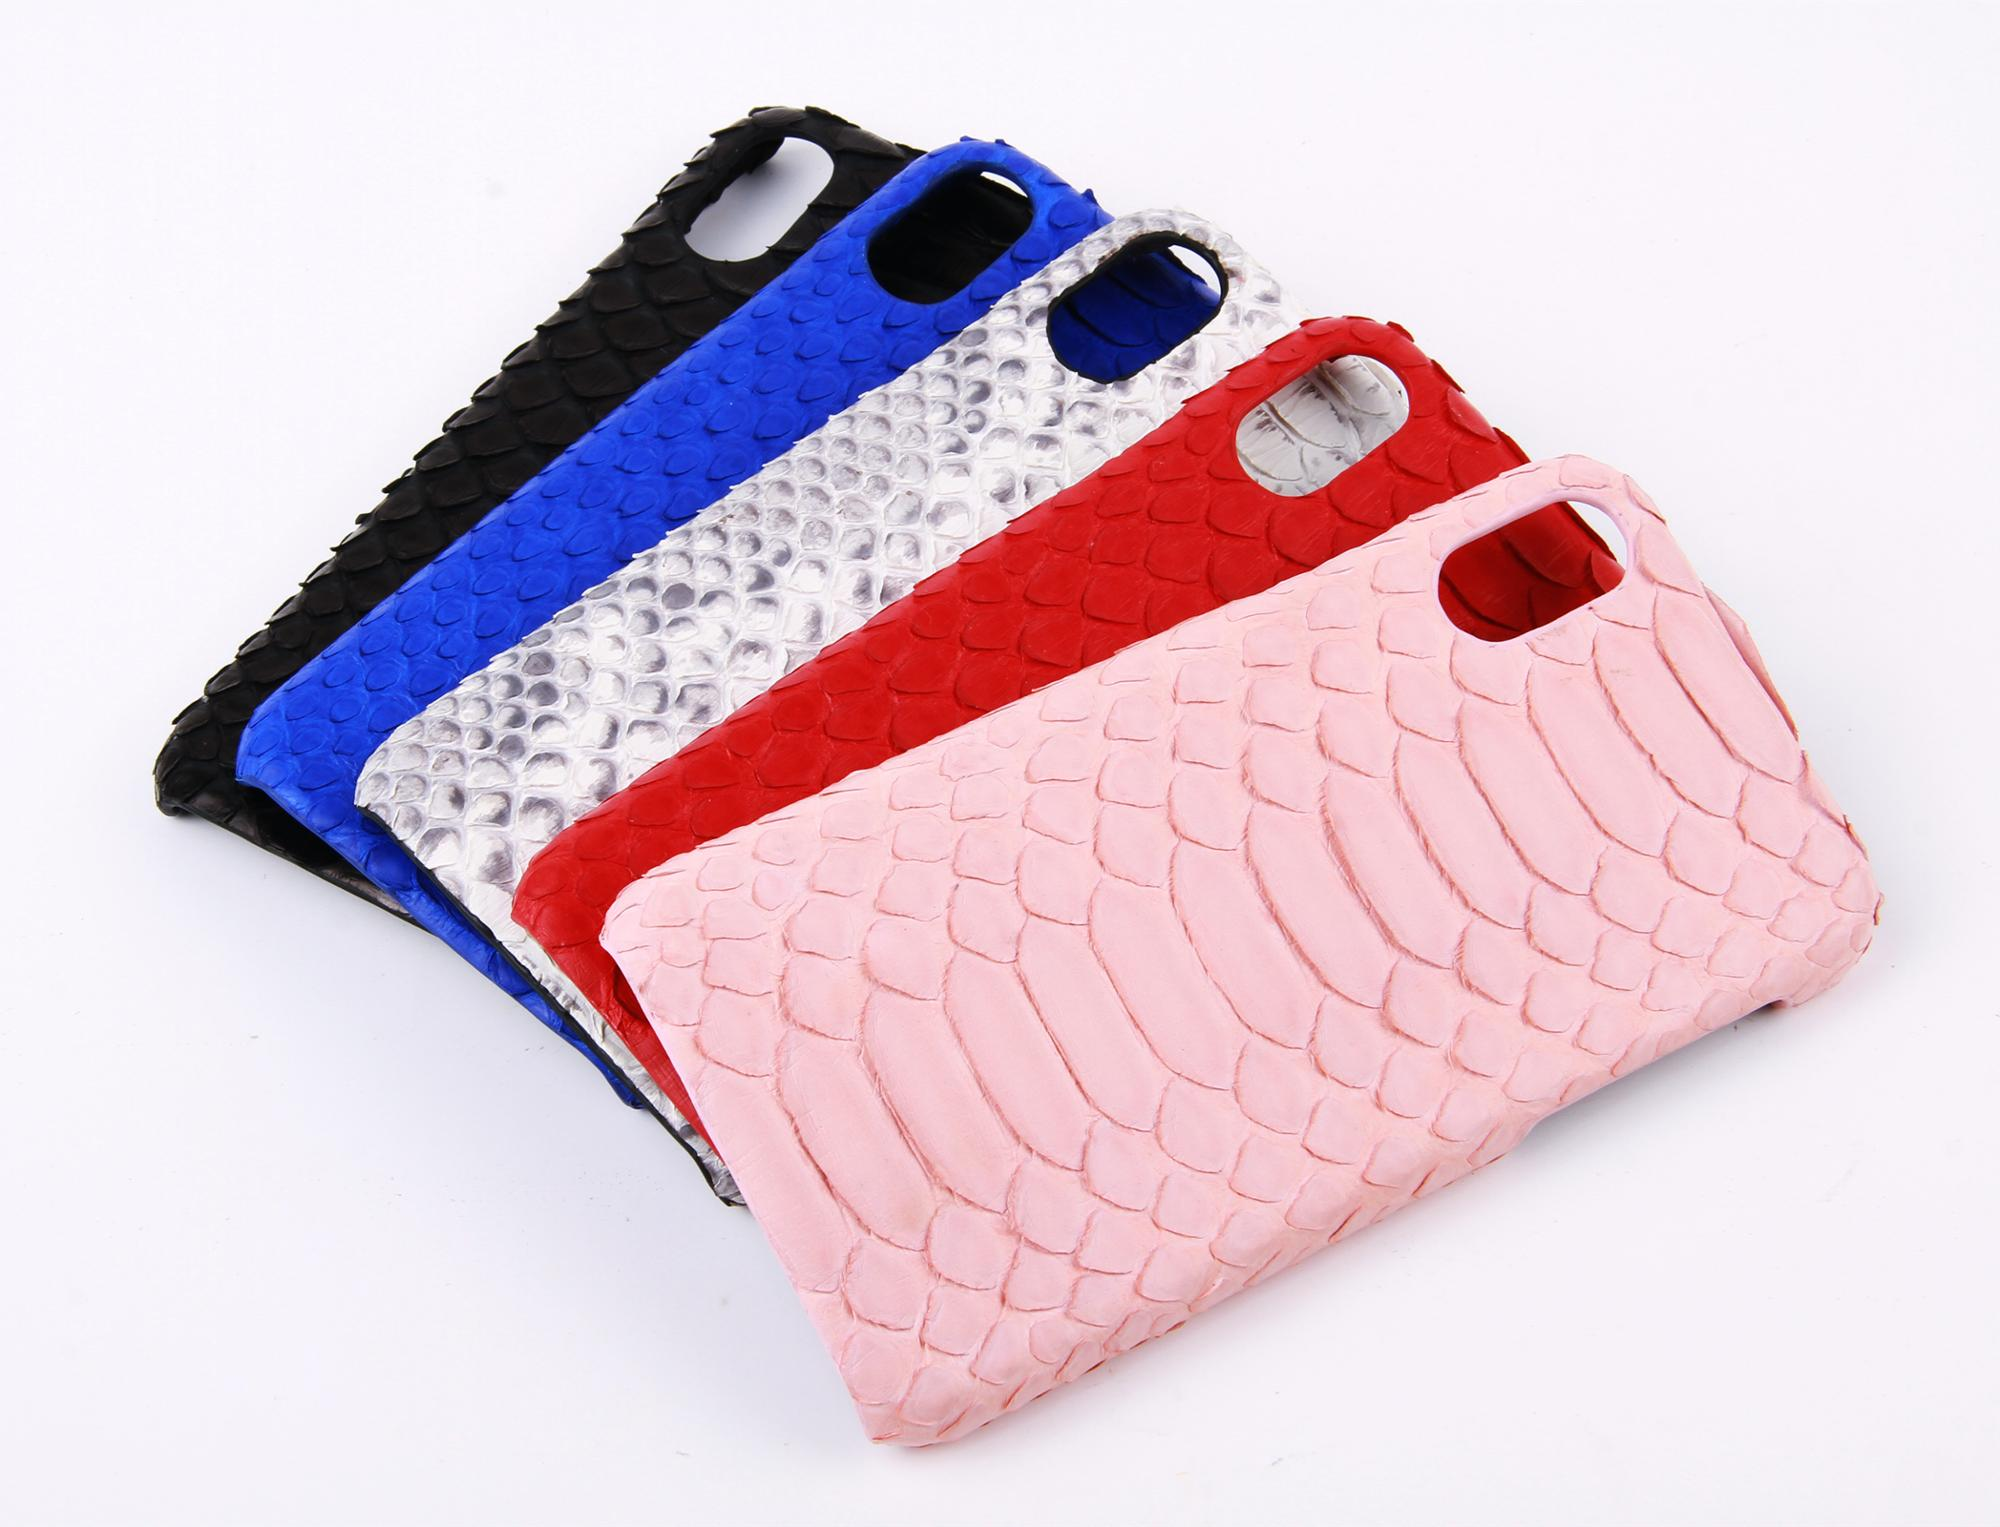 Embossed Python PU Leather Plastic Phone Case